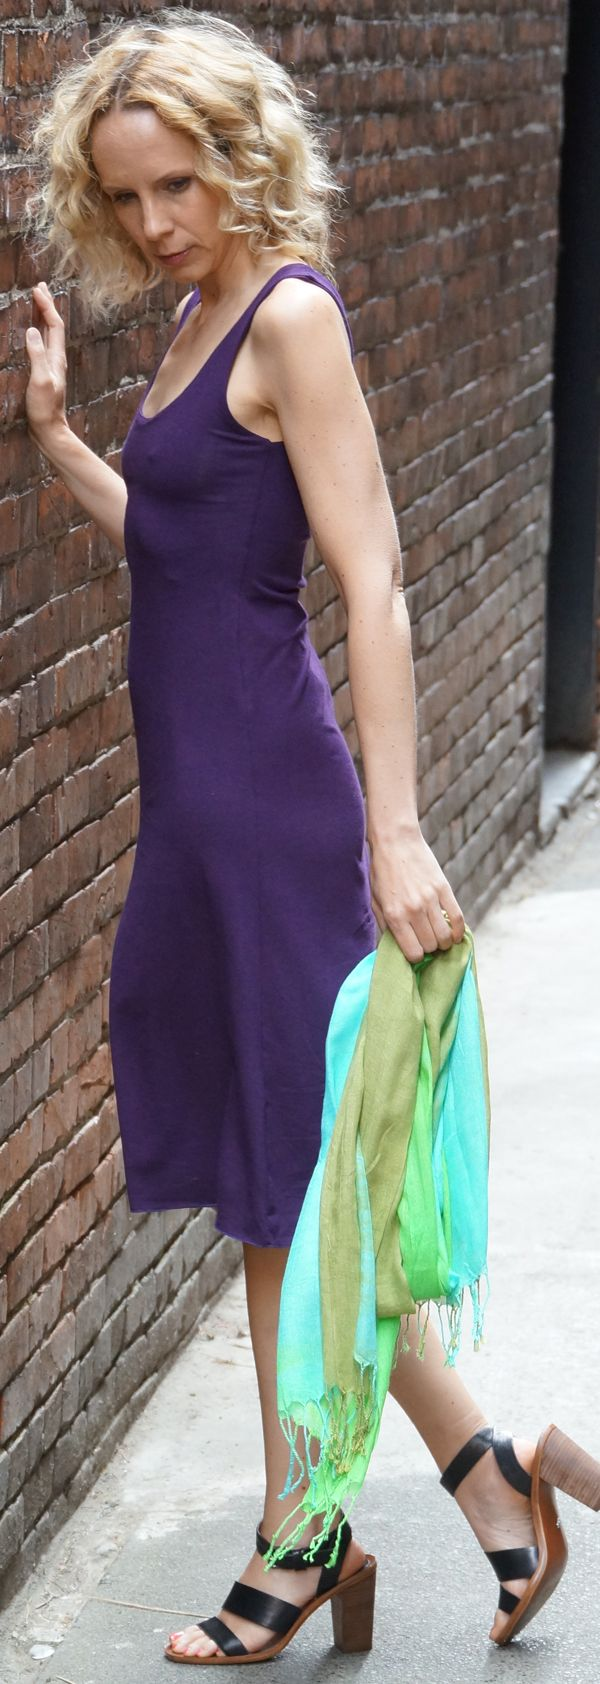 Stunning Plum Bamboo Dress from Squeezed.ca http://squeezed.ca/shop/plum-bamboo-a-line-dress-with-diva-crown